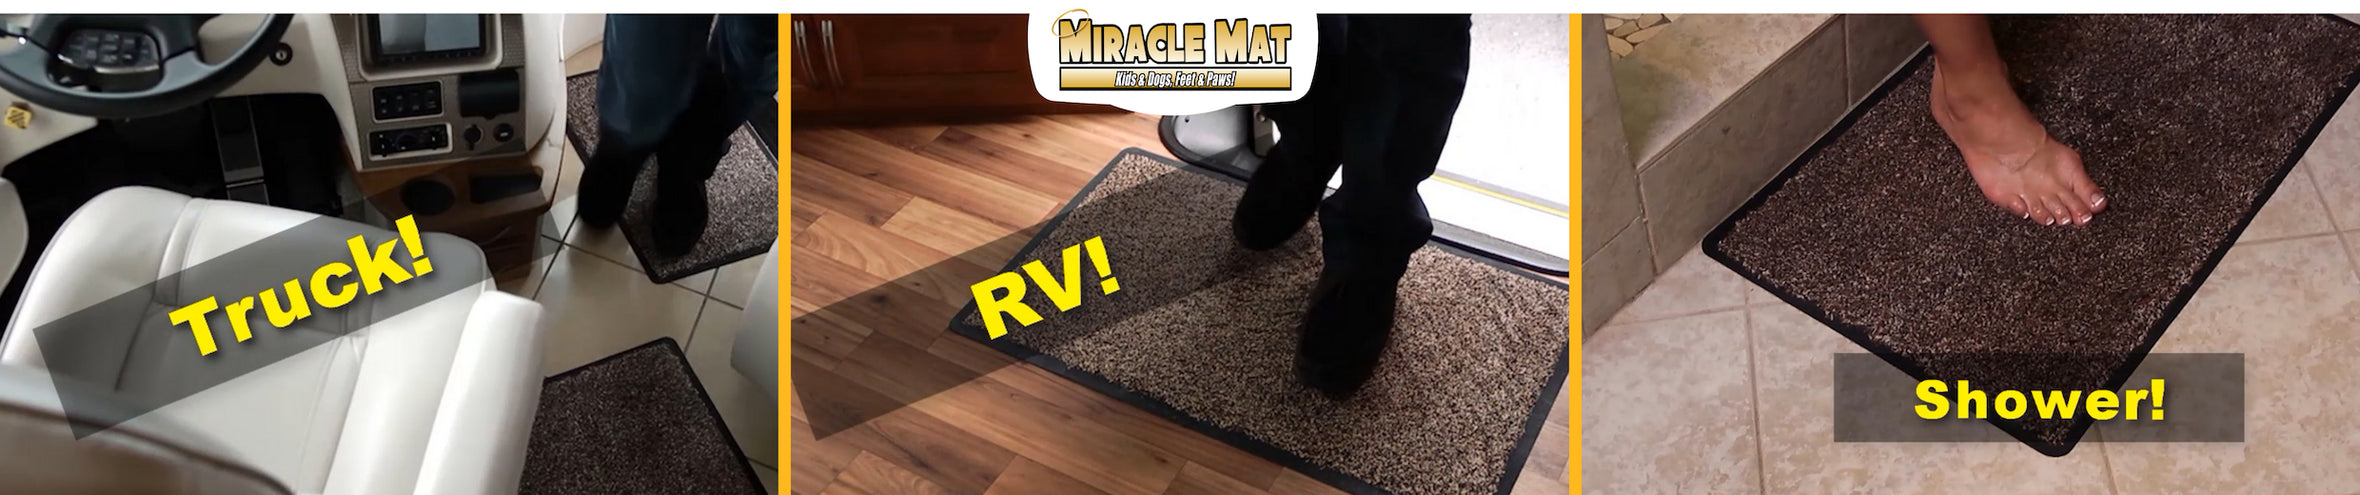 Miracle Mat - Truck, RVs, Showers - it does it all!